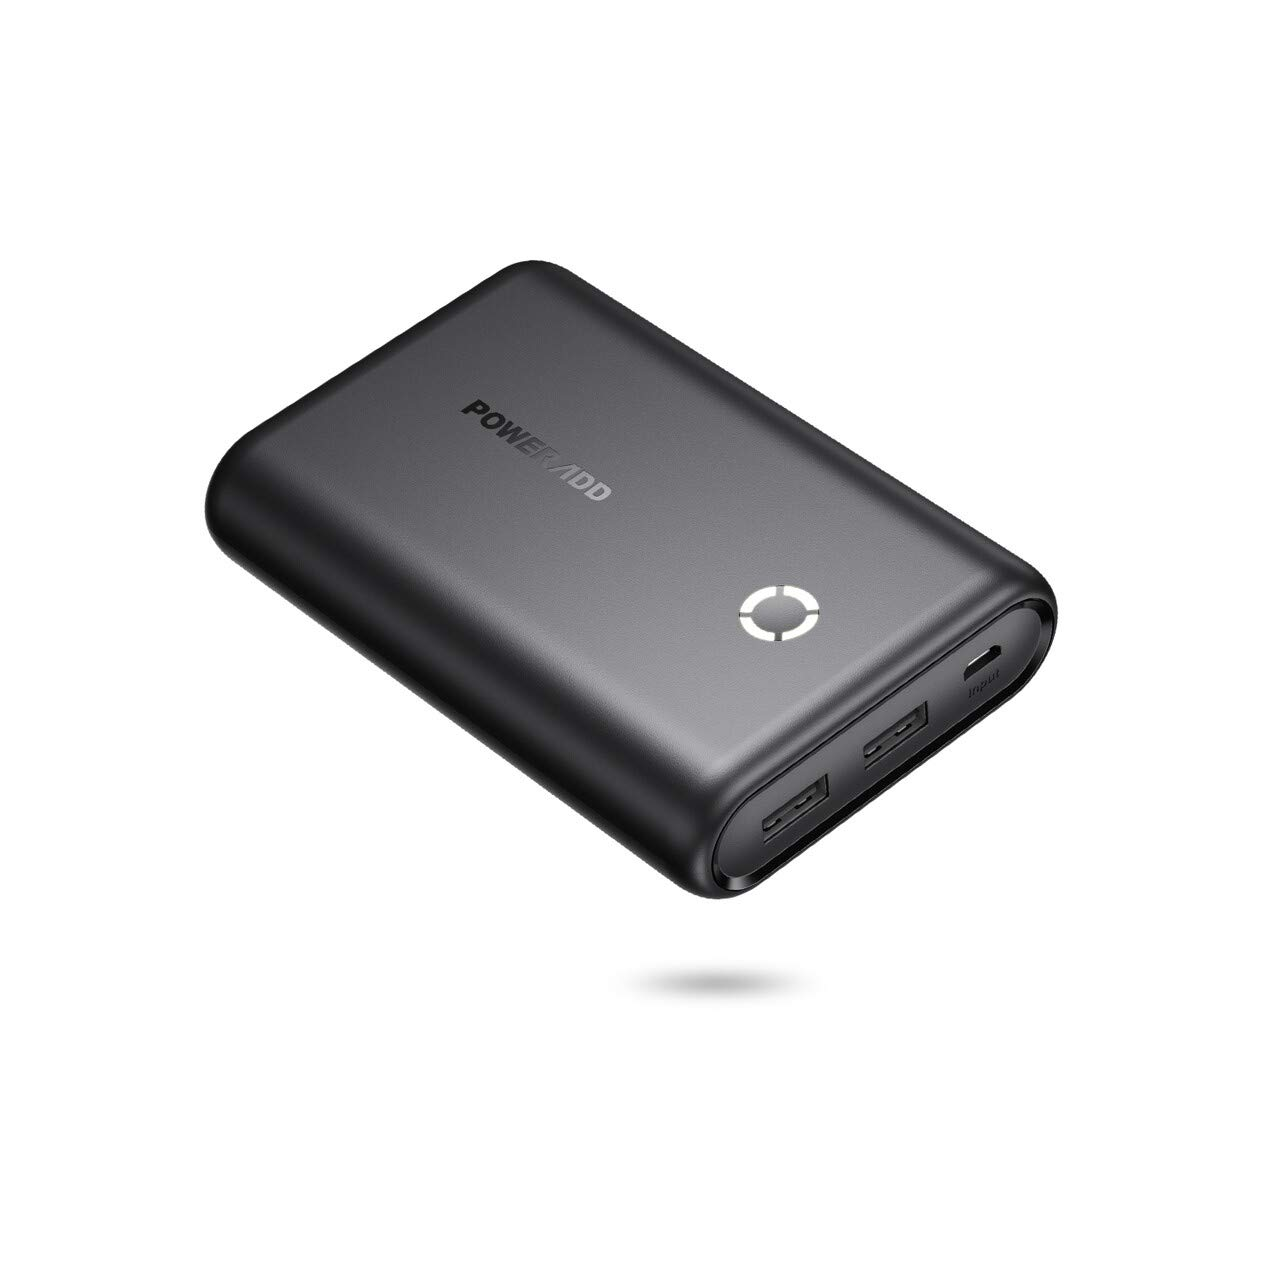 Poweradd 15000mAh Portable Charger Power Bank Compatible for iPhone, iPad, Samsung, Huawei, most other Phones and Tablets-Black